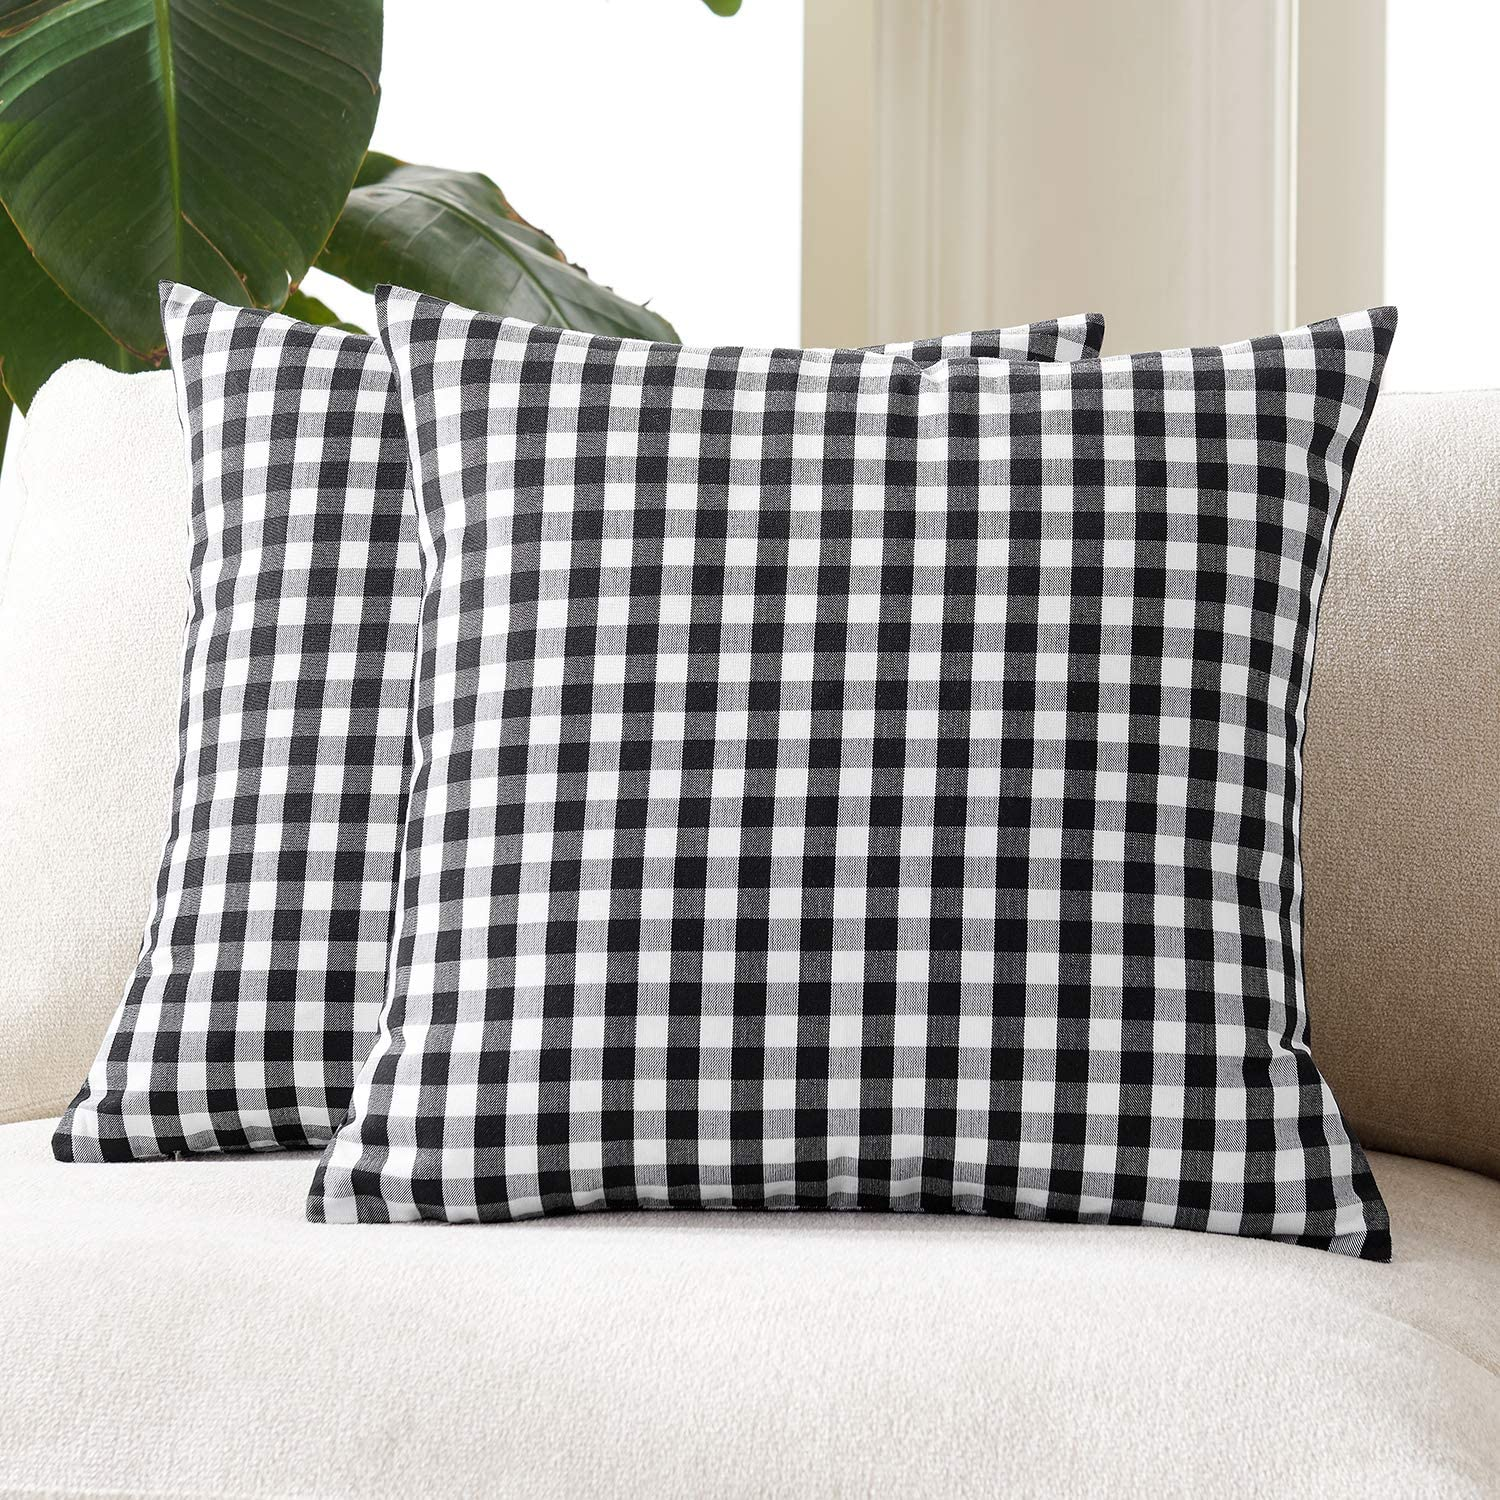 Very popular Foindtower Pack of 2 Farmhouse Pillow C Throw Decorative Gingham Daily bargain sale